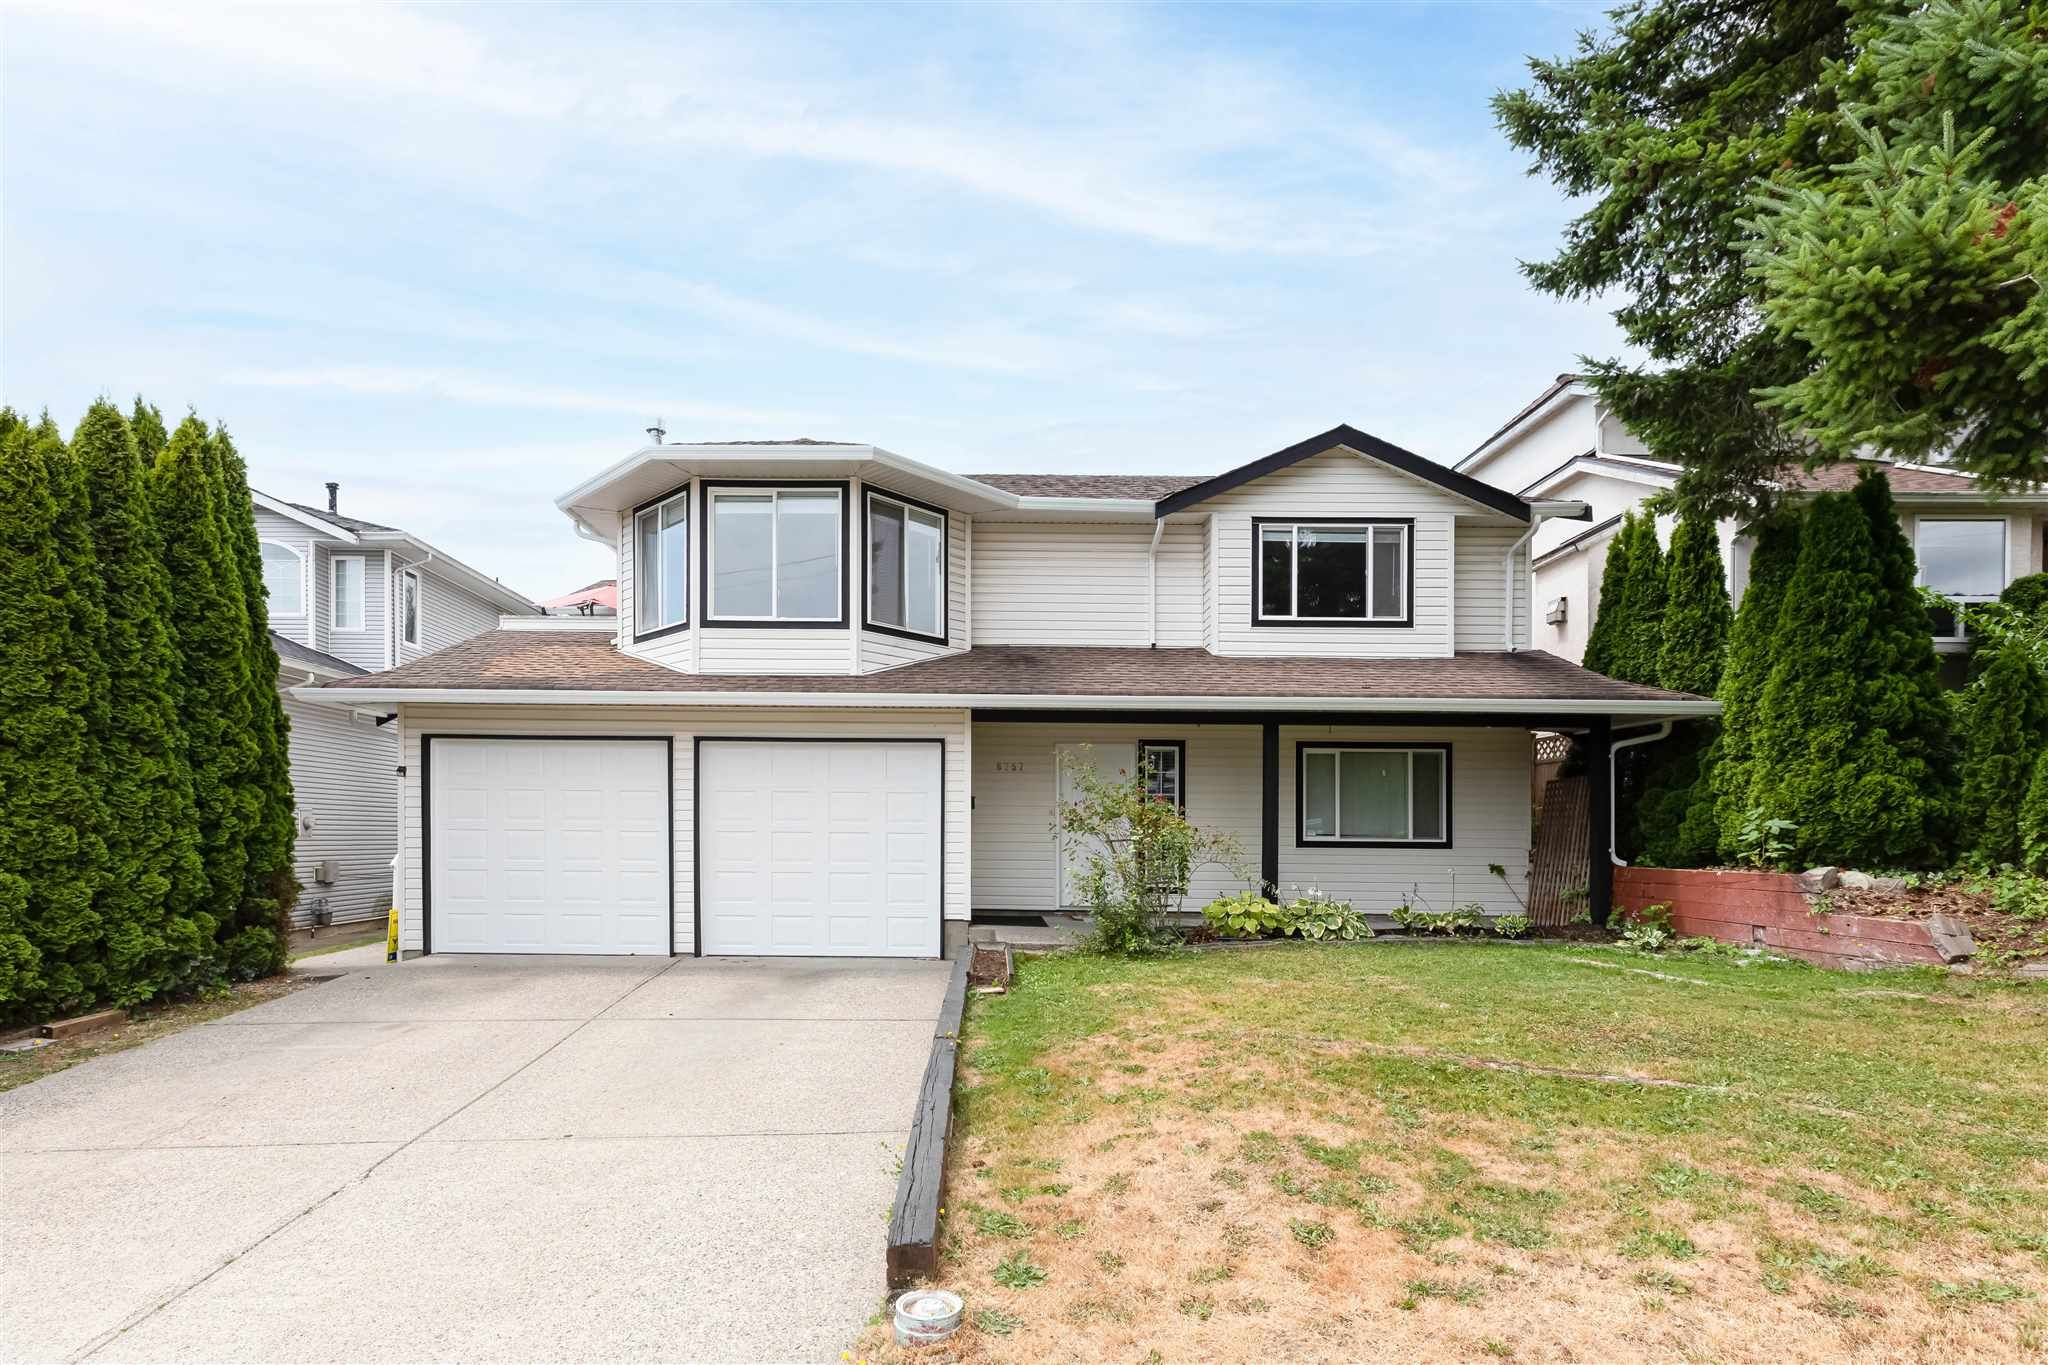 Main Photo: 6757 197 Street in Langley: Willoughby Heights House for sale : MLS®# R2600577